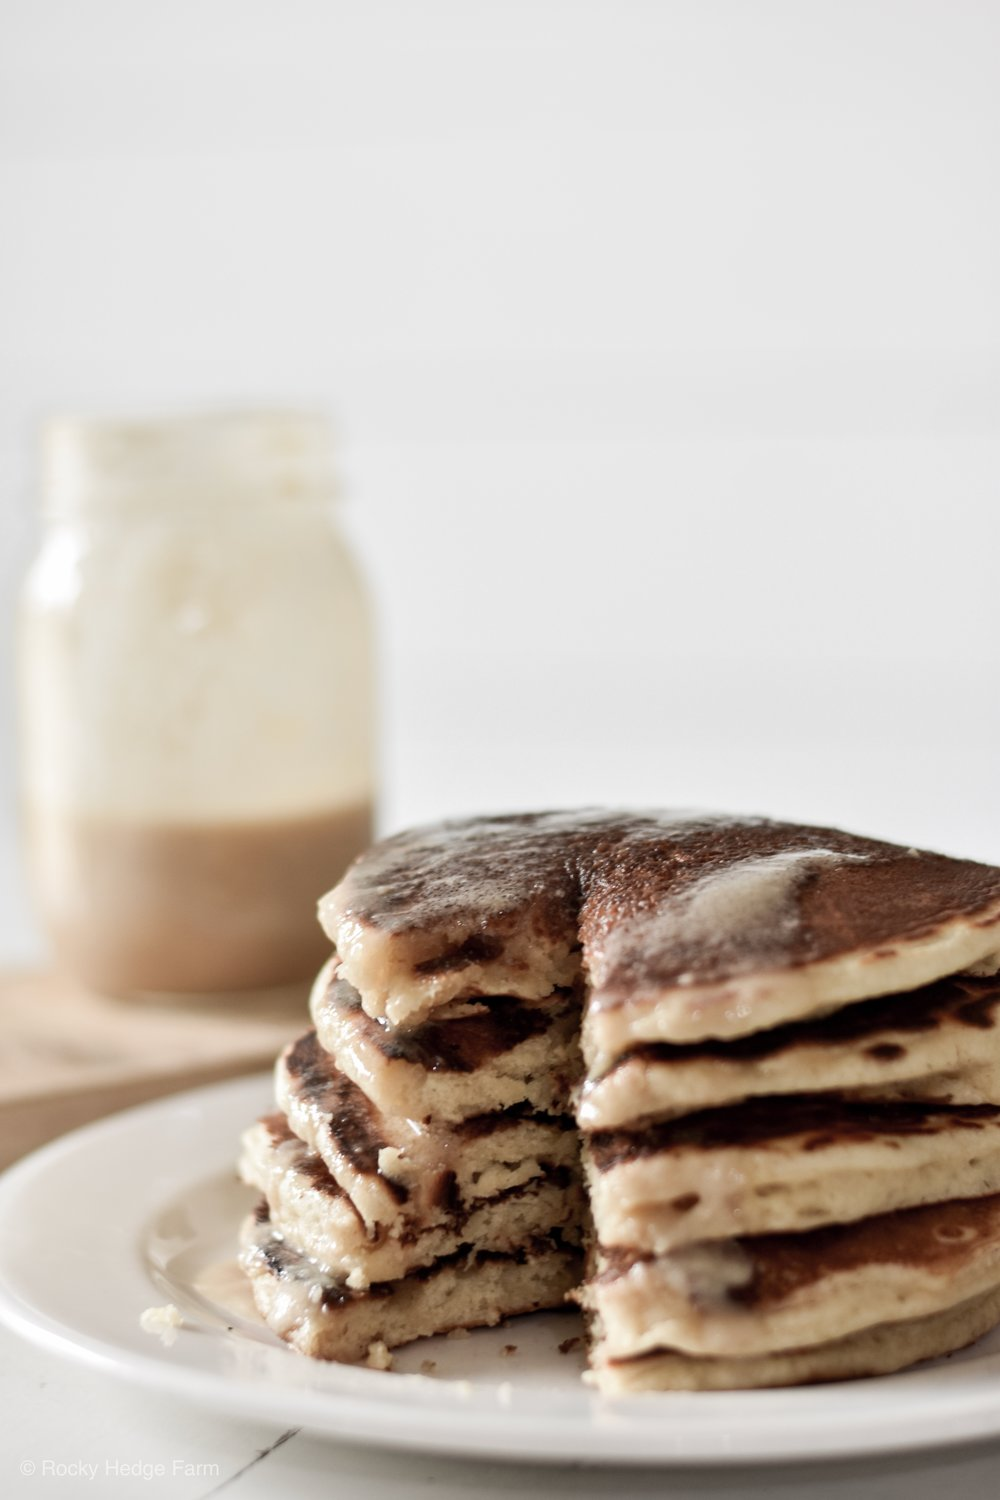 Delicious Sourdough pancakes! Fluffy Sunday morning pancakes made with sourdough from Rocky Hedge Farm. #fromscratch #pancakes #sourdoughrecipe